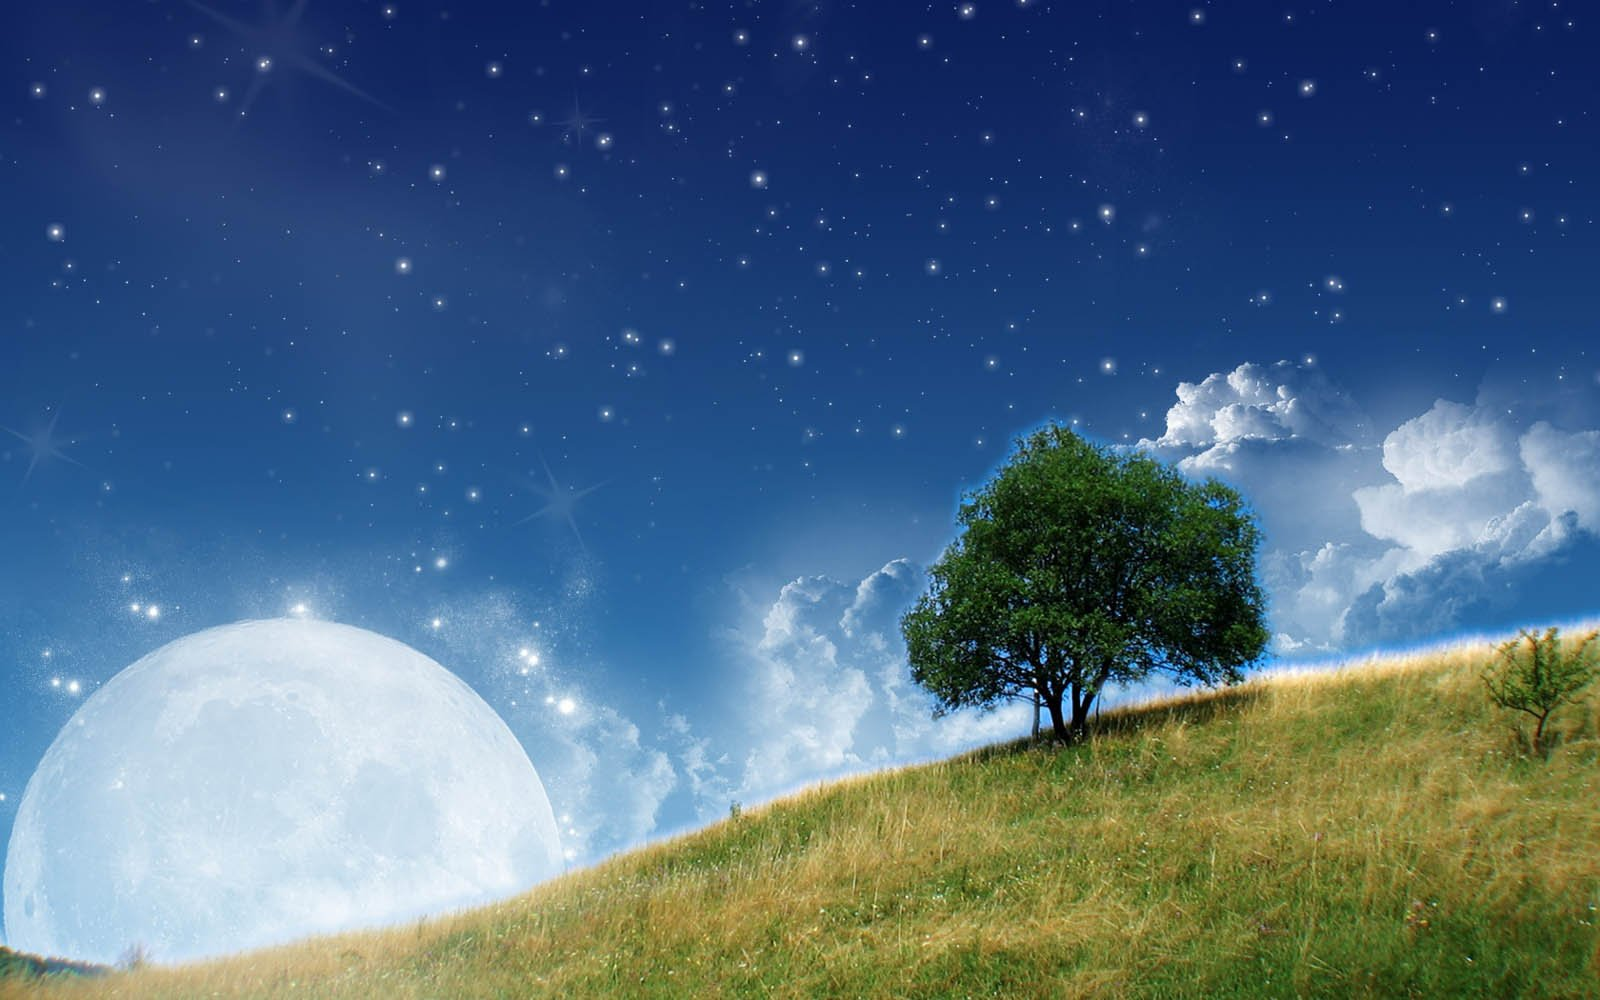 wallpapers Moon Nature Wallpapers 1600x1000